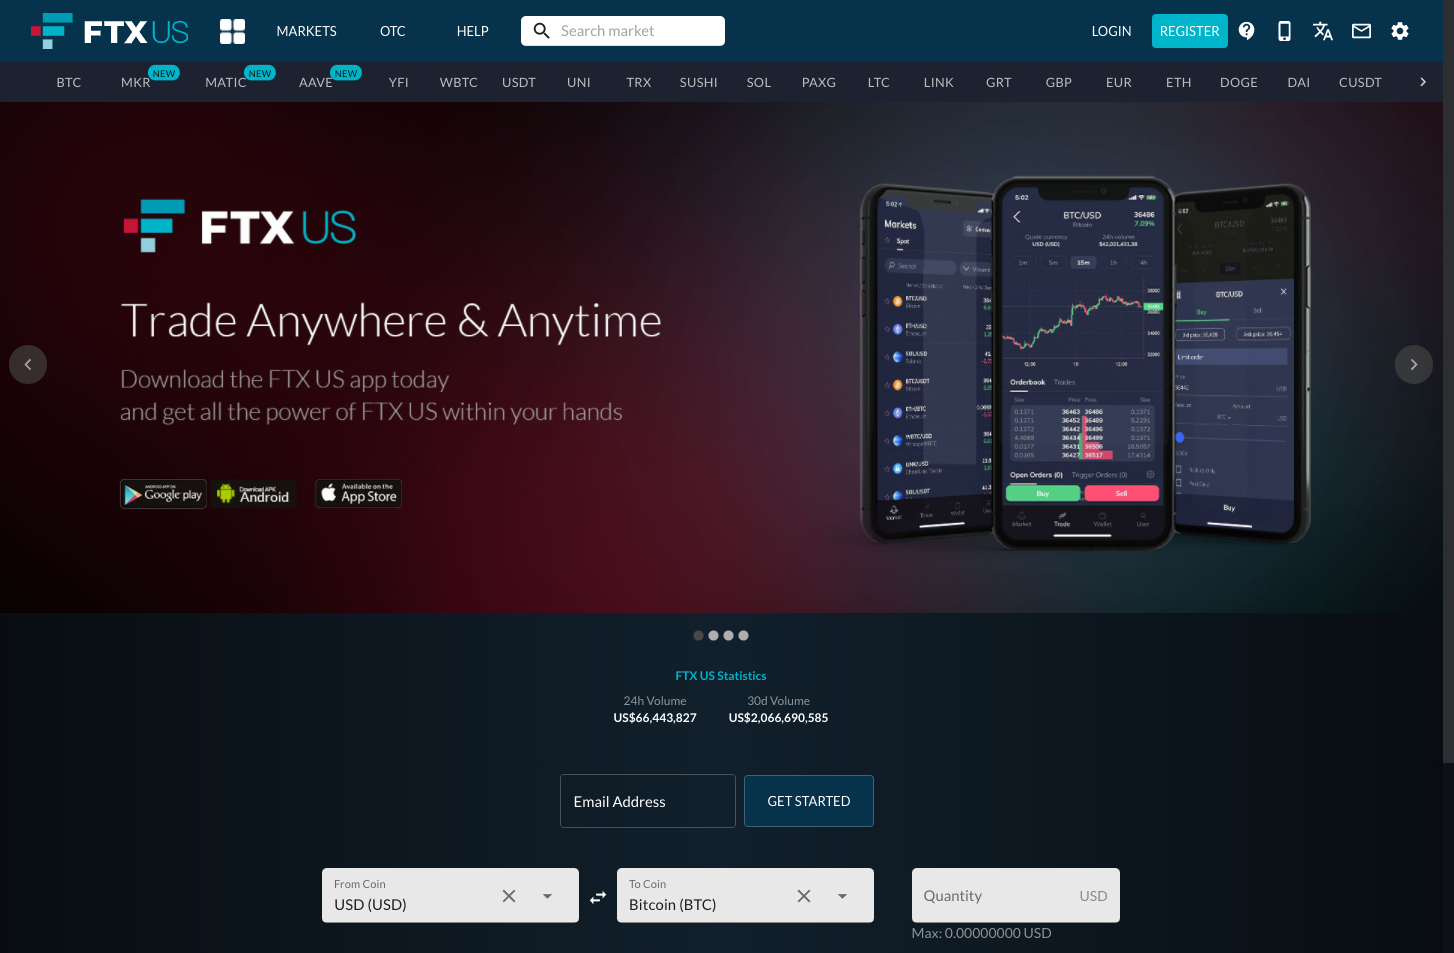 FTX.US front page screenshot